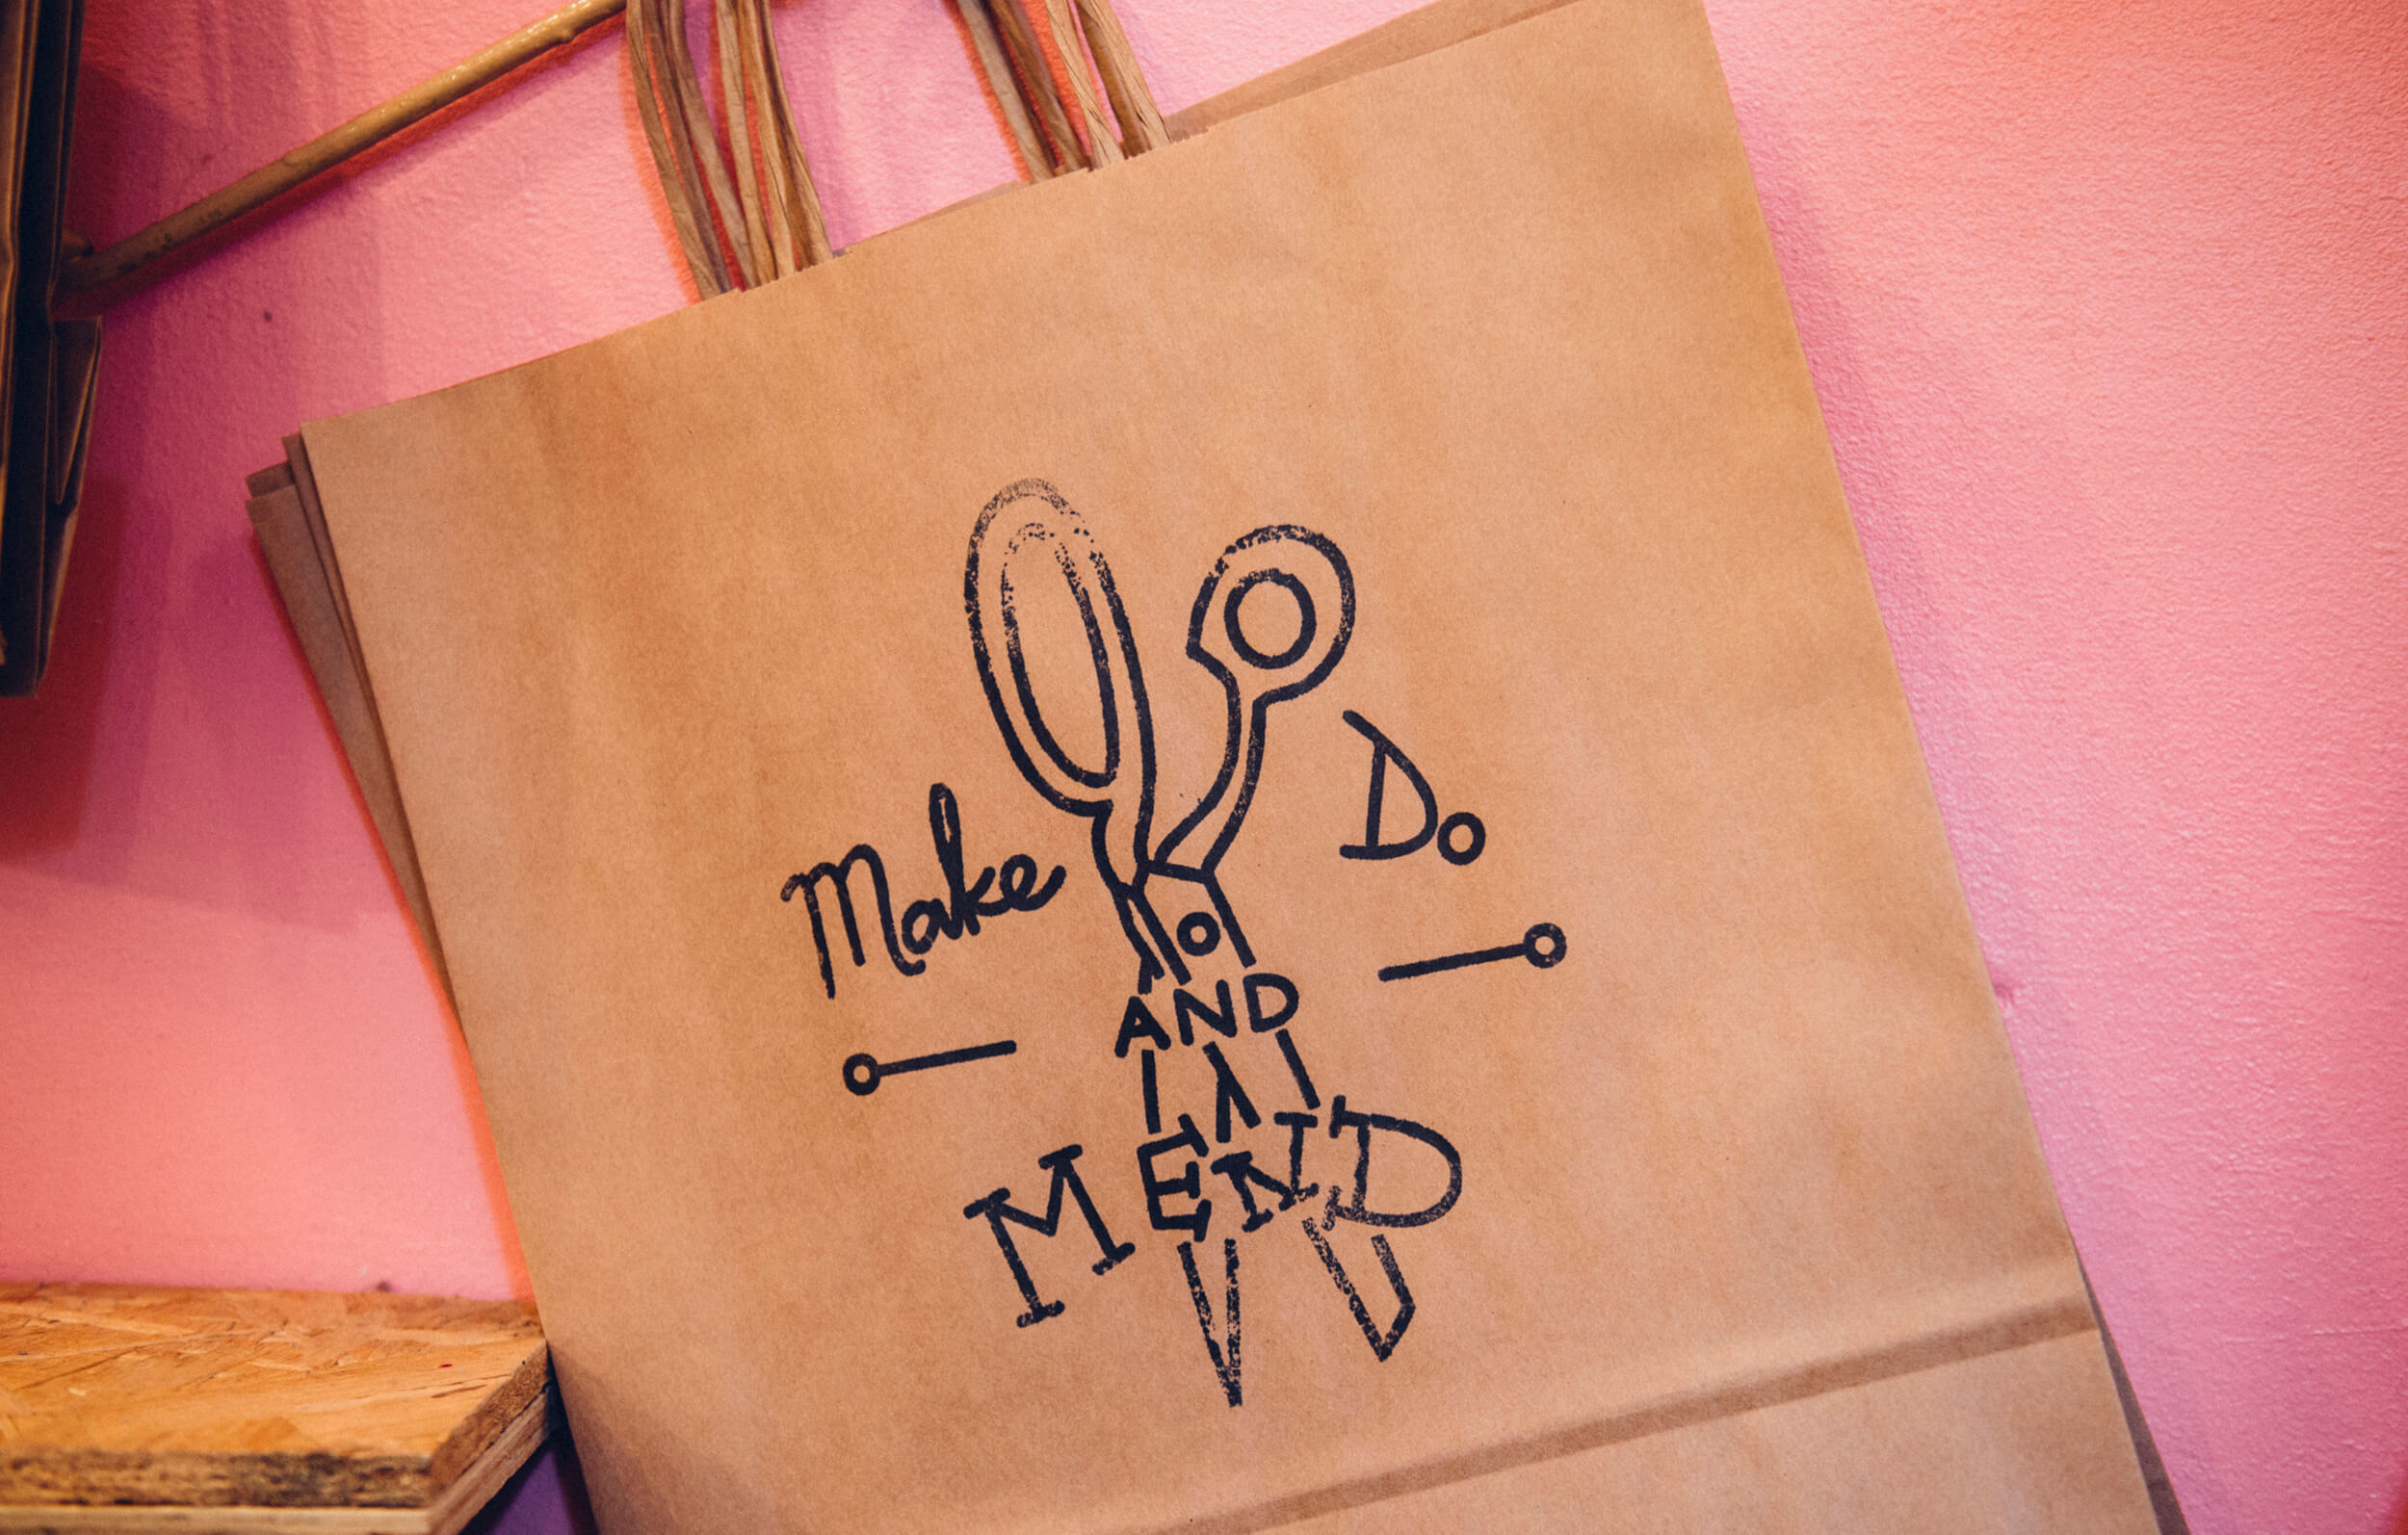 The Make Do and Mend logo, designed by Talking Horse, stamped on a brown bag